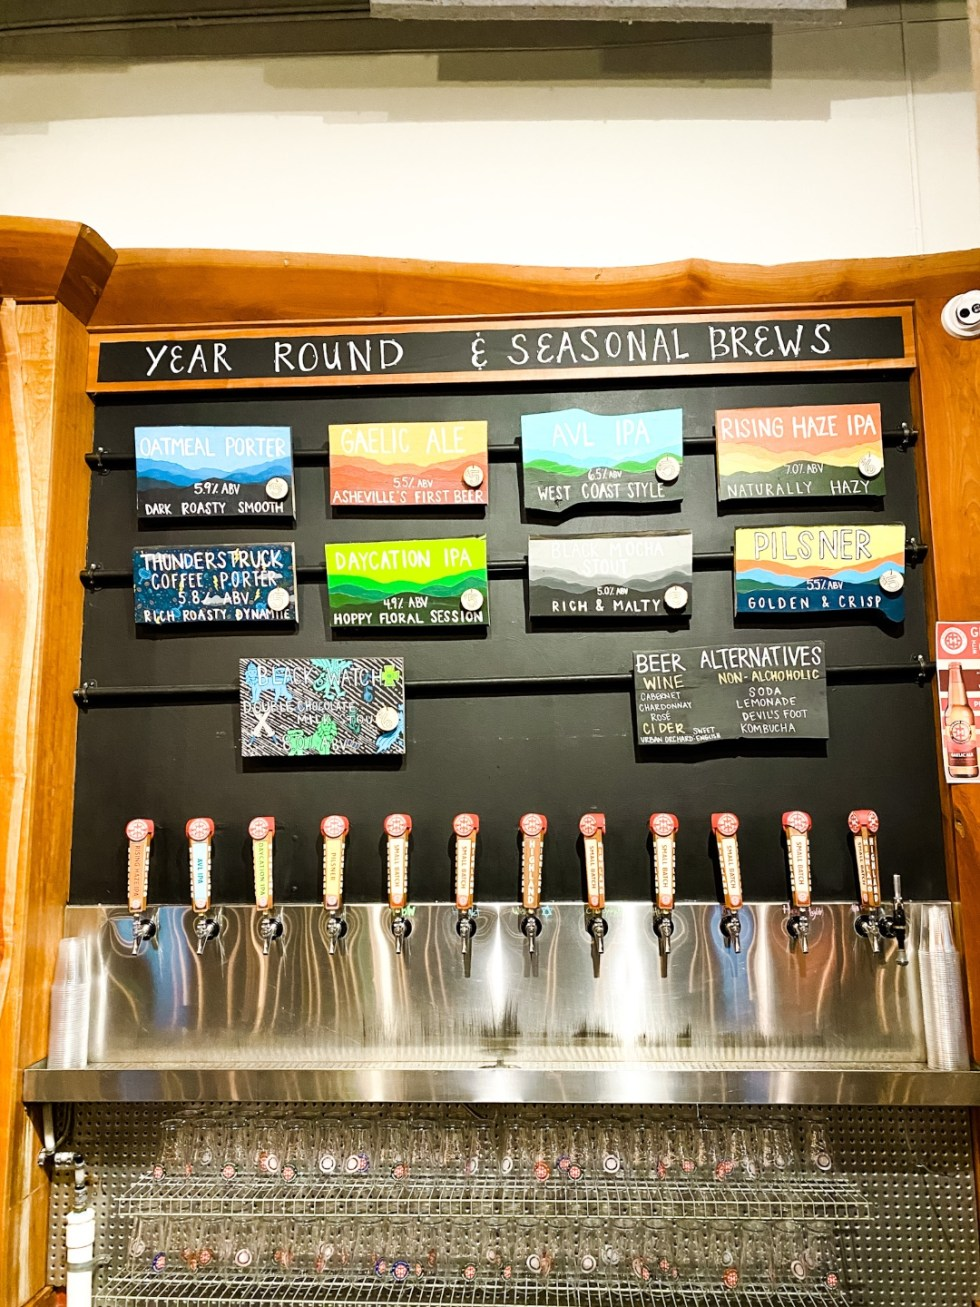 Christmas in Asheville: a Weekend Getaway During the Holidays - I'm Fixin' To - @imfixintoblog |Christmas in Asheville NC by popular NC lifestyle blog, I'm Fixin' To: image of beer on tap at Highland Brewing Co.